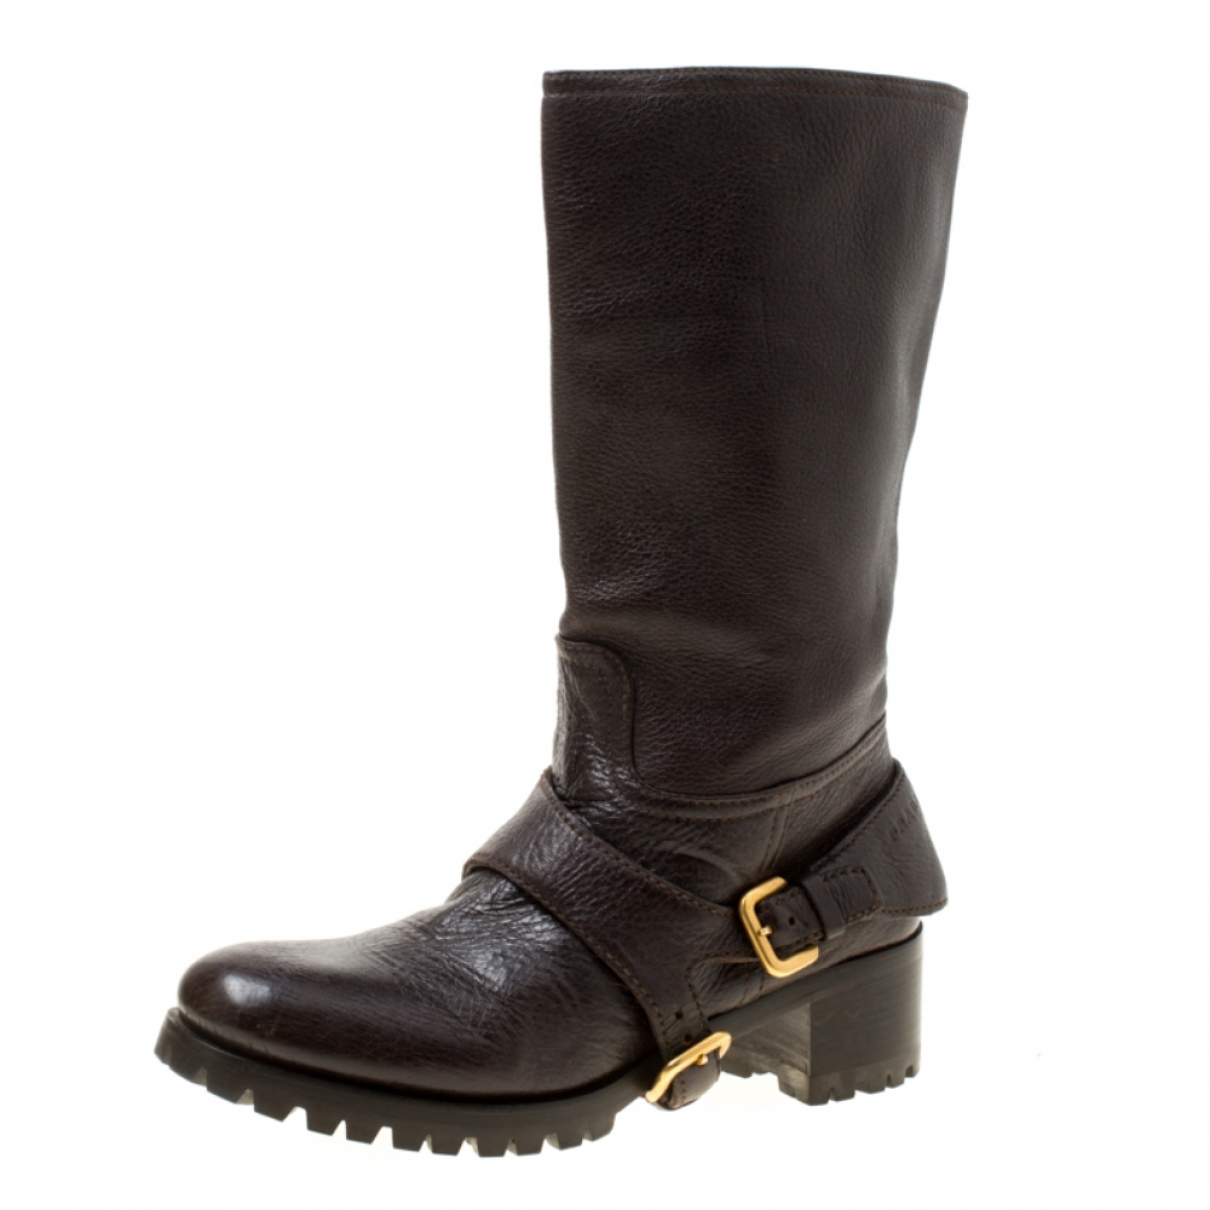 Prada \N Brown Leather Boots for Women 6 US